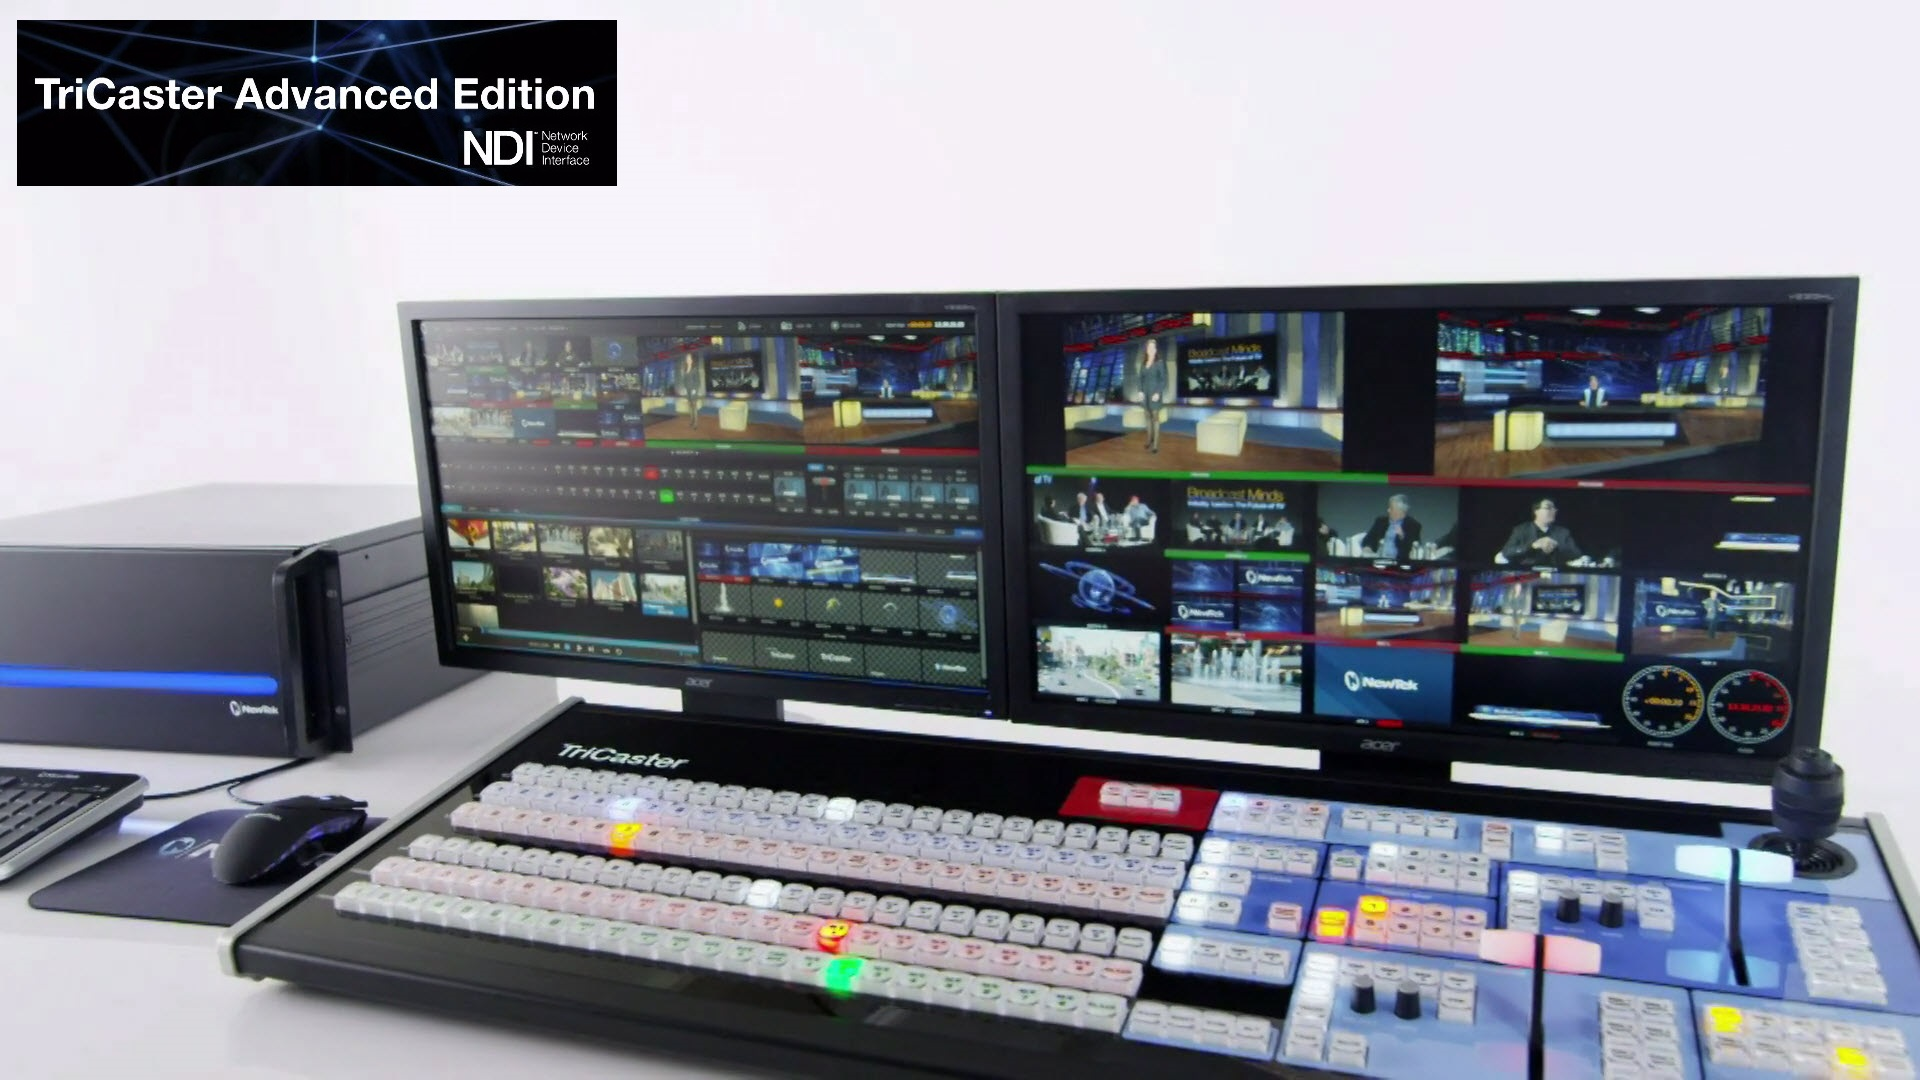 TriCaster8000SystemShot_MulticamTCAEVid_003_comp0001a